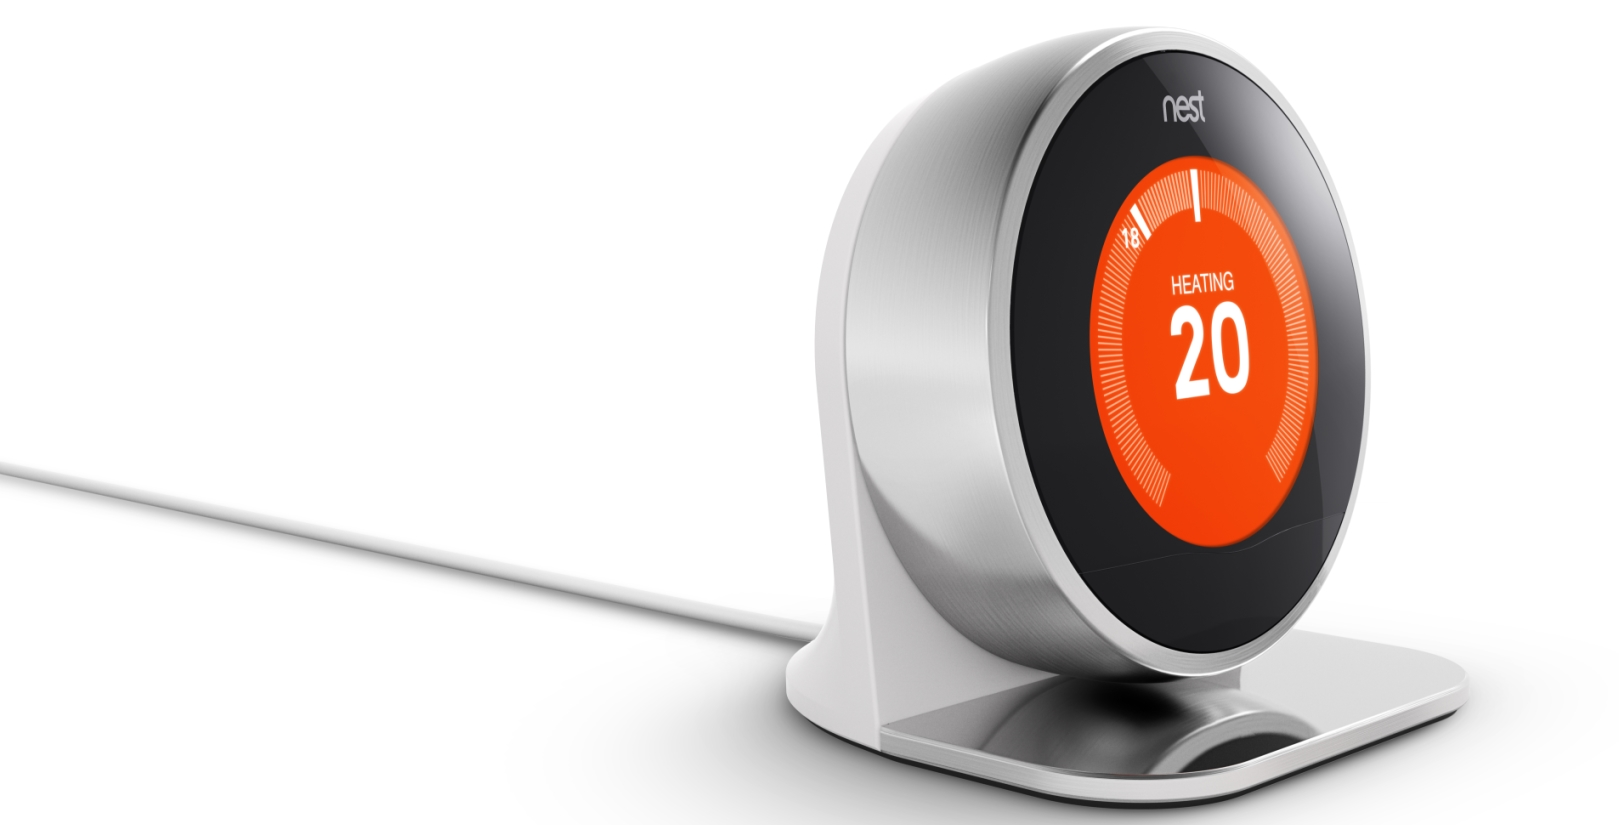 Nest U0026 39 S Smart Thermostat Is Now Available To Buy In The Uk